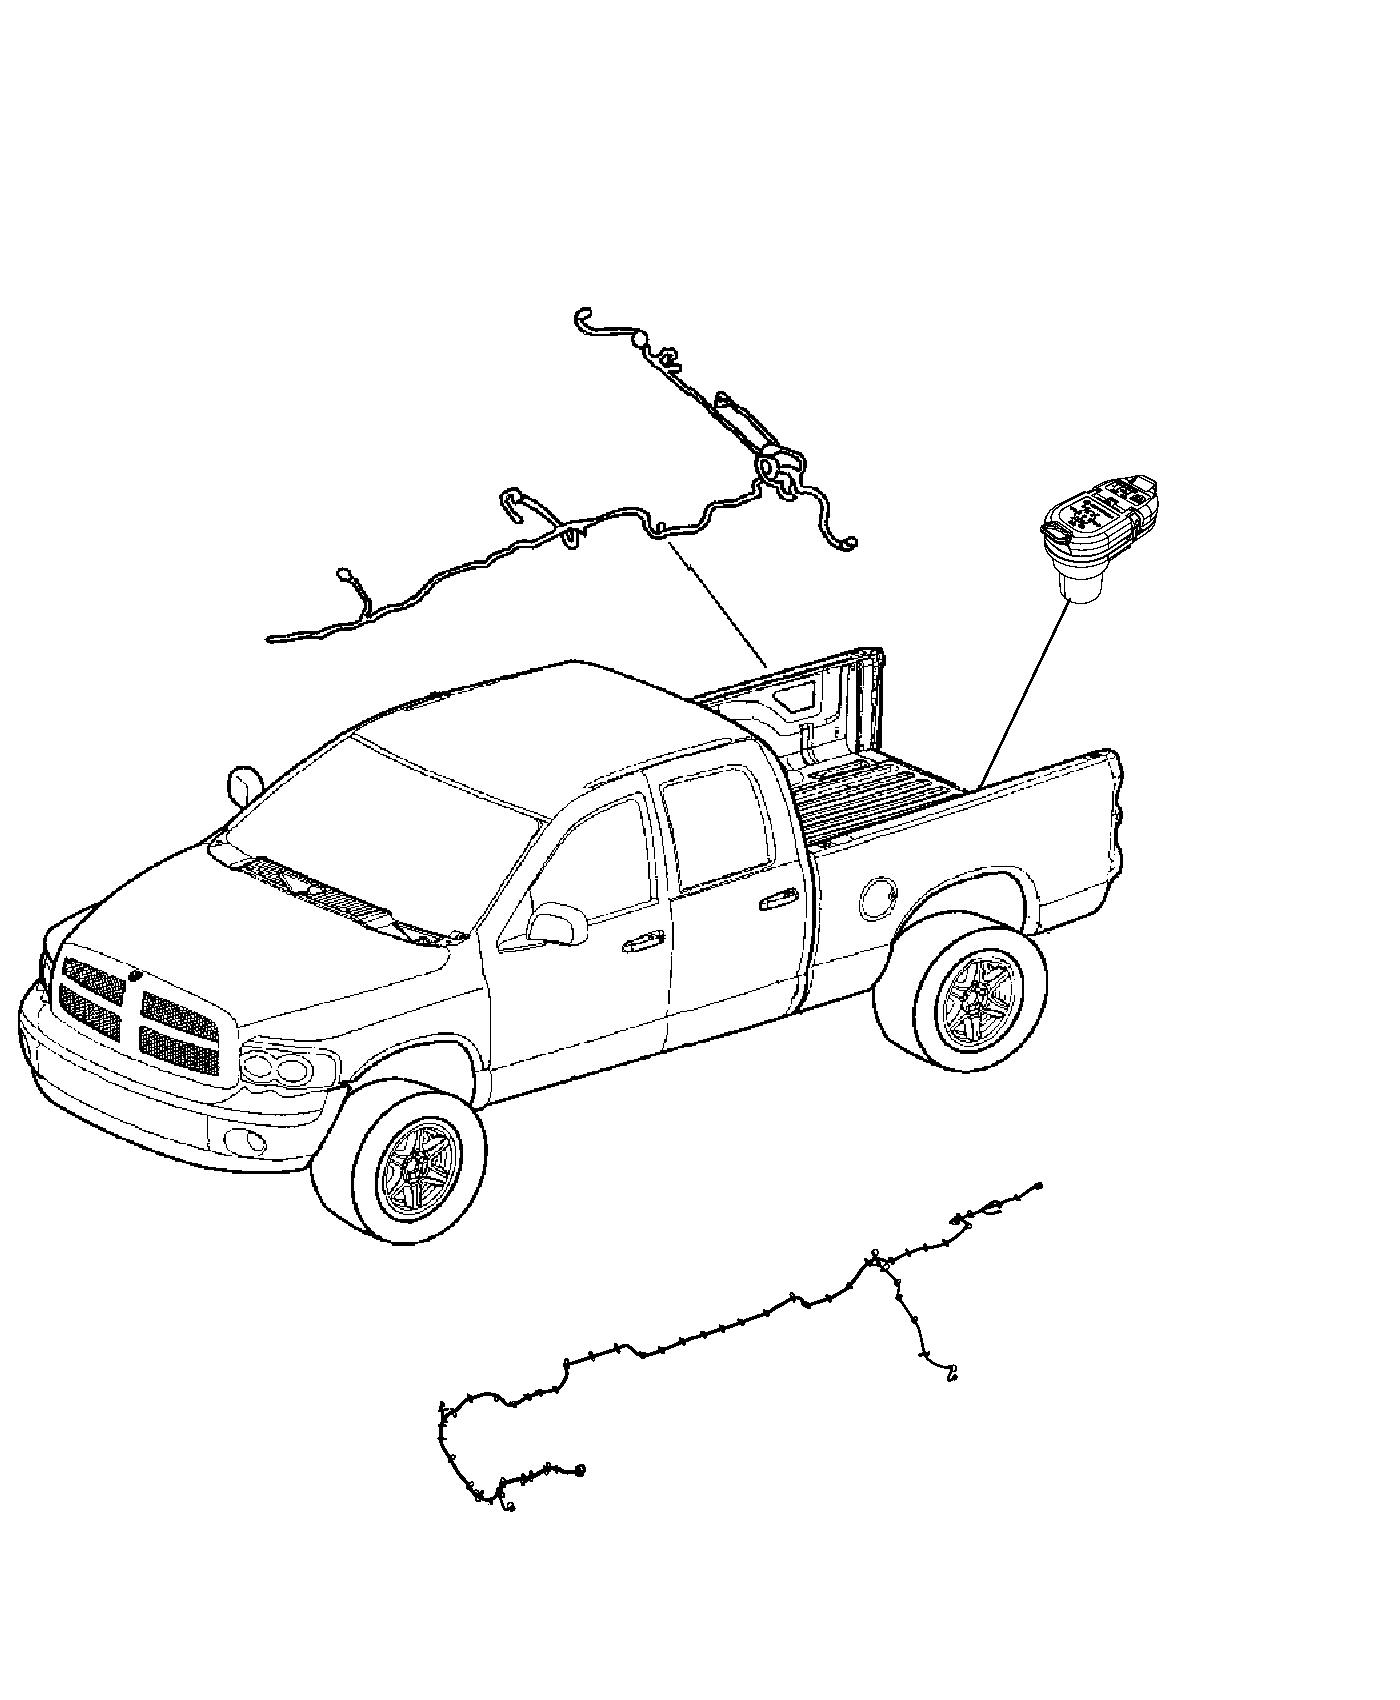 Dodge Ram Wiring Jumper Front Axle Disconnect